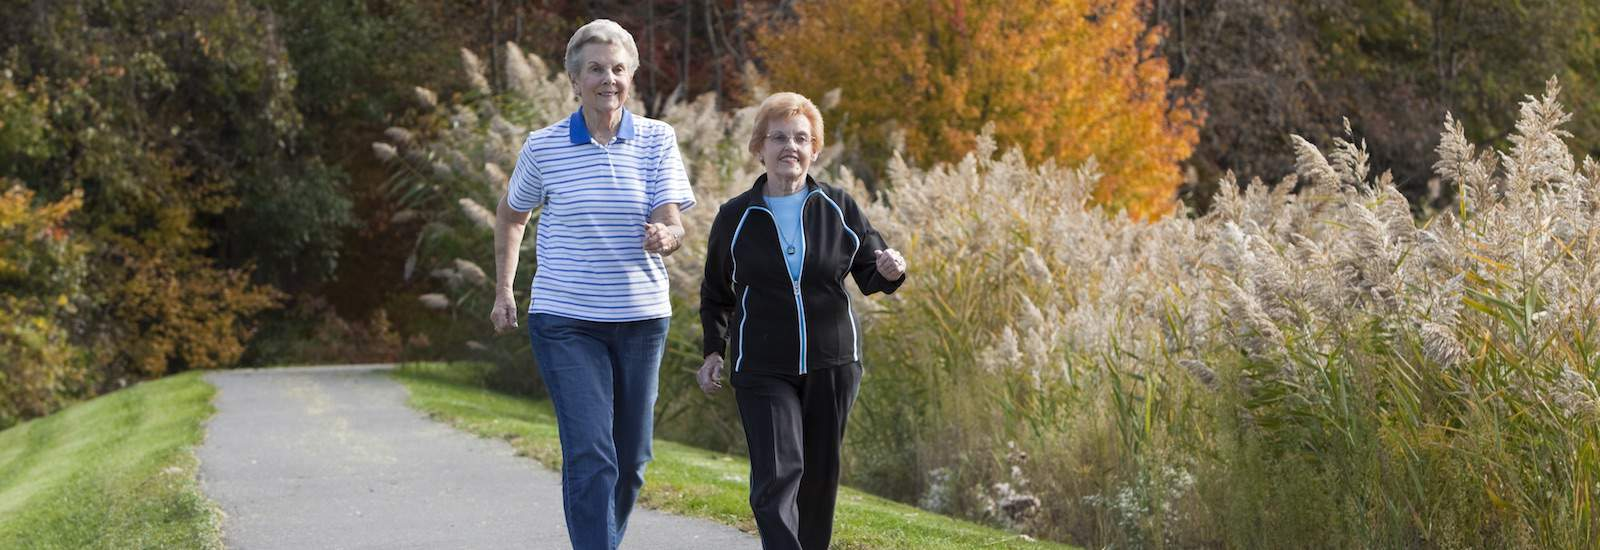 residents walking the trails